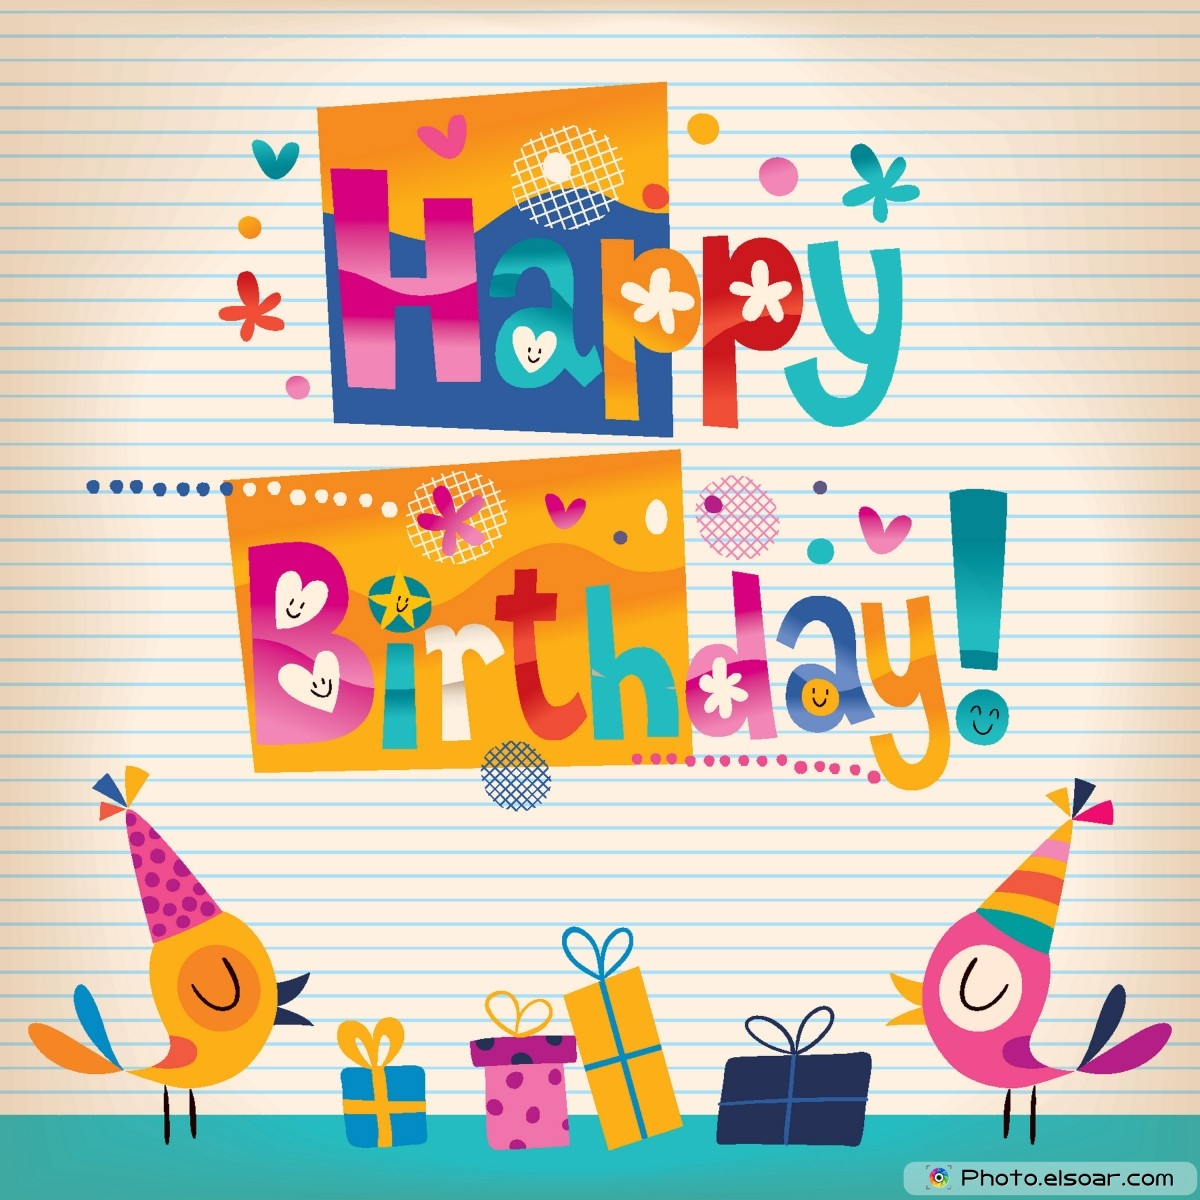 Free Unique Happy Birthday Cards With Many Elements Elsoar – Happy Birthday Card Design Free